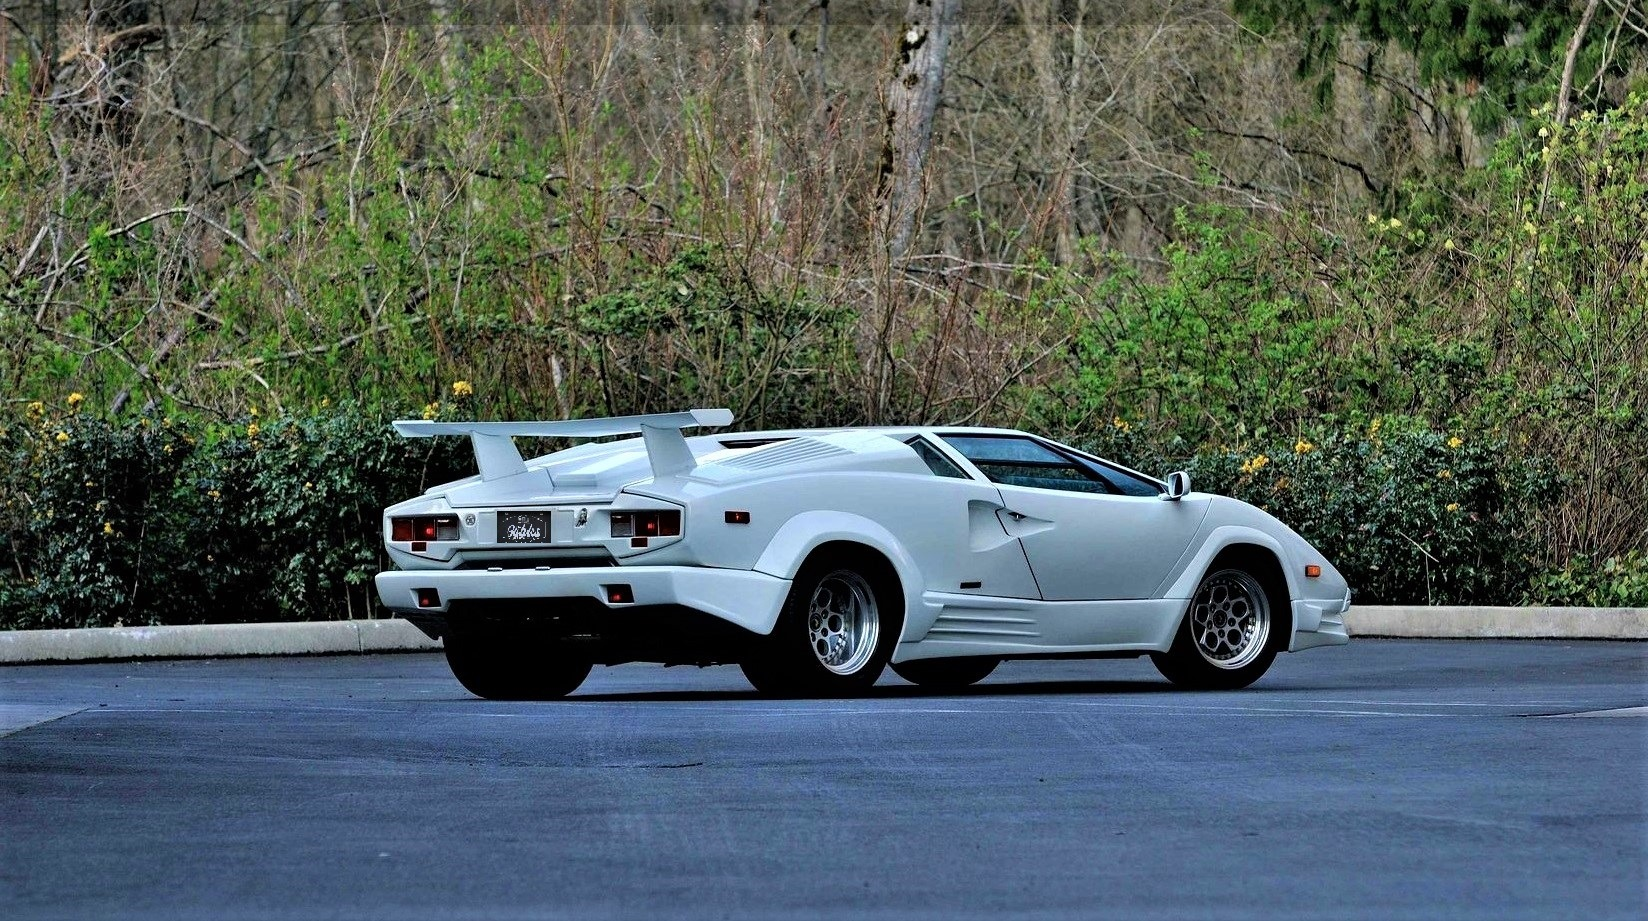 Used 1989 Lamborghini Countach LP112D for sale $295,850 at The Gables Sports Cars in Miami FL 33146 3